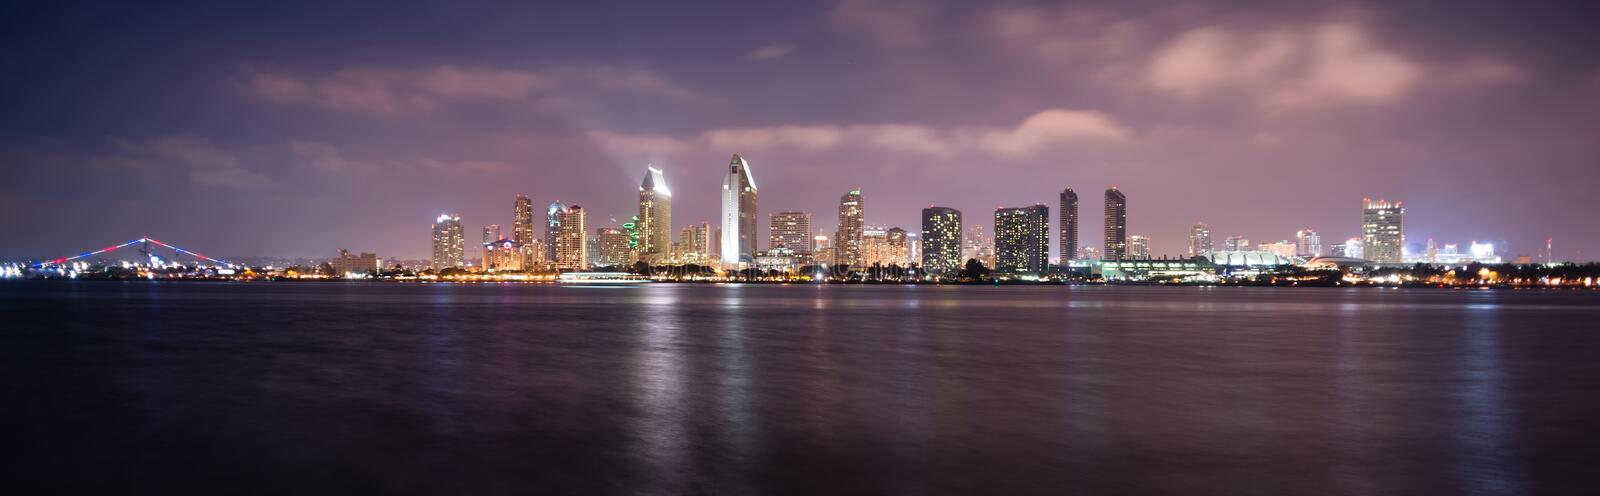 Late Night Coronado San Diego Bay Downtown City Skyline. Clouds look ominous over San Diego, California stock images